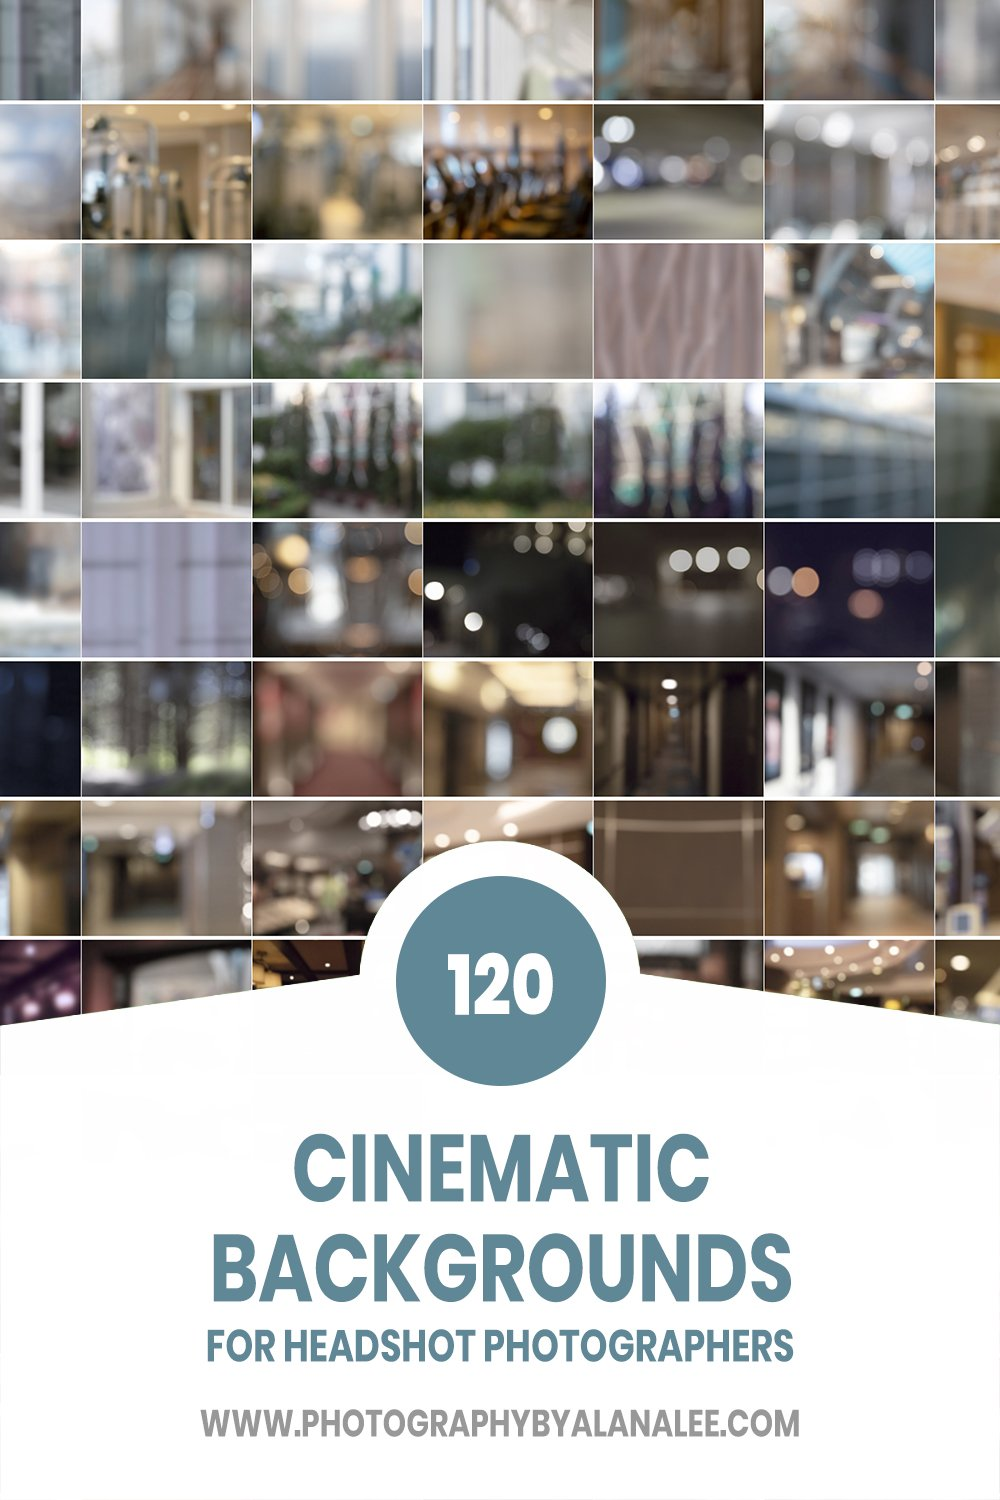 102 neutral toned cinematic digital backgrounds for headshot photographers